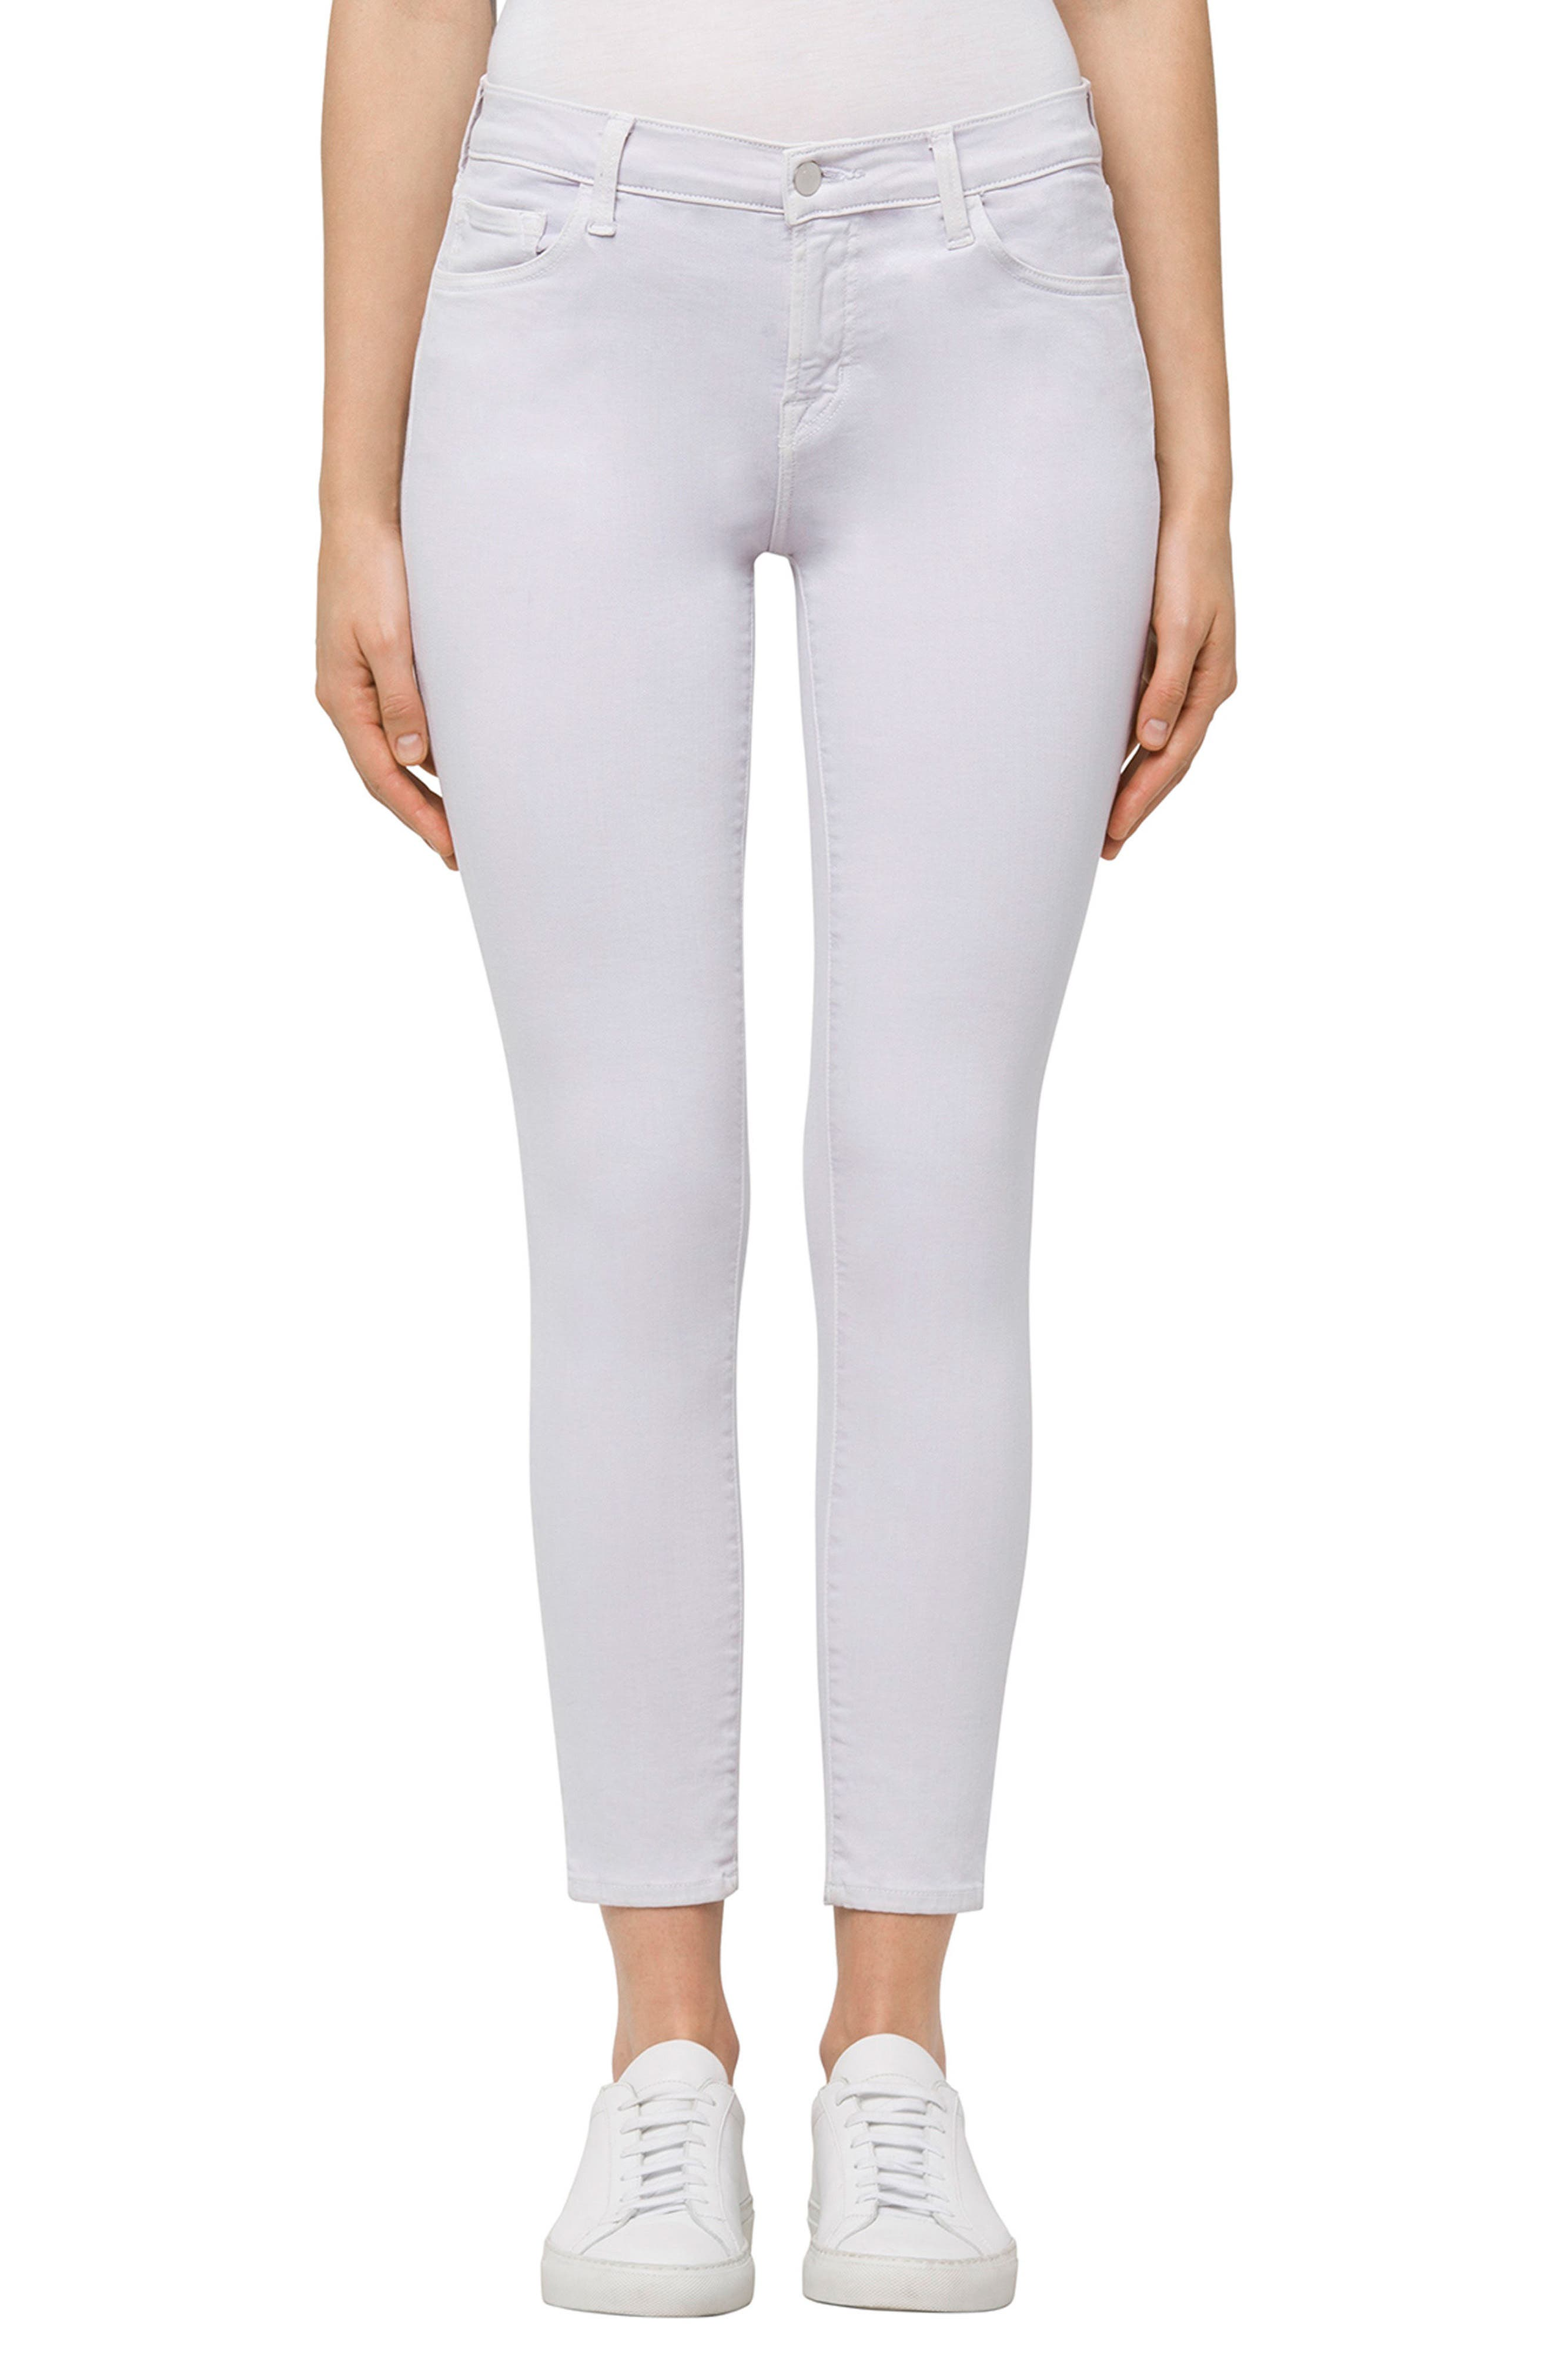 835 Capri Skinny Jeans,                             Main thumbnail 1, color,                             Frosted Amethyst